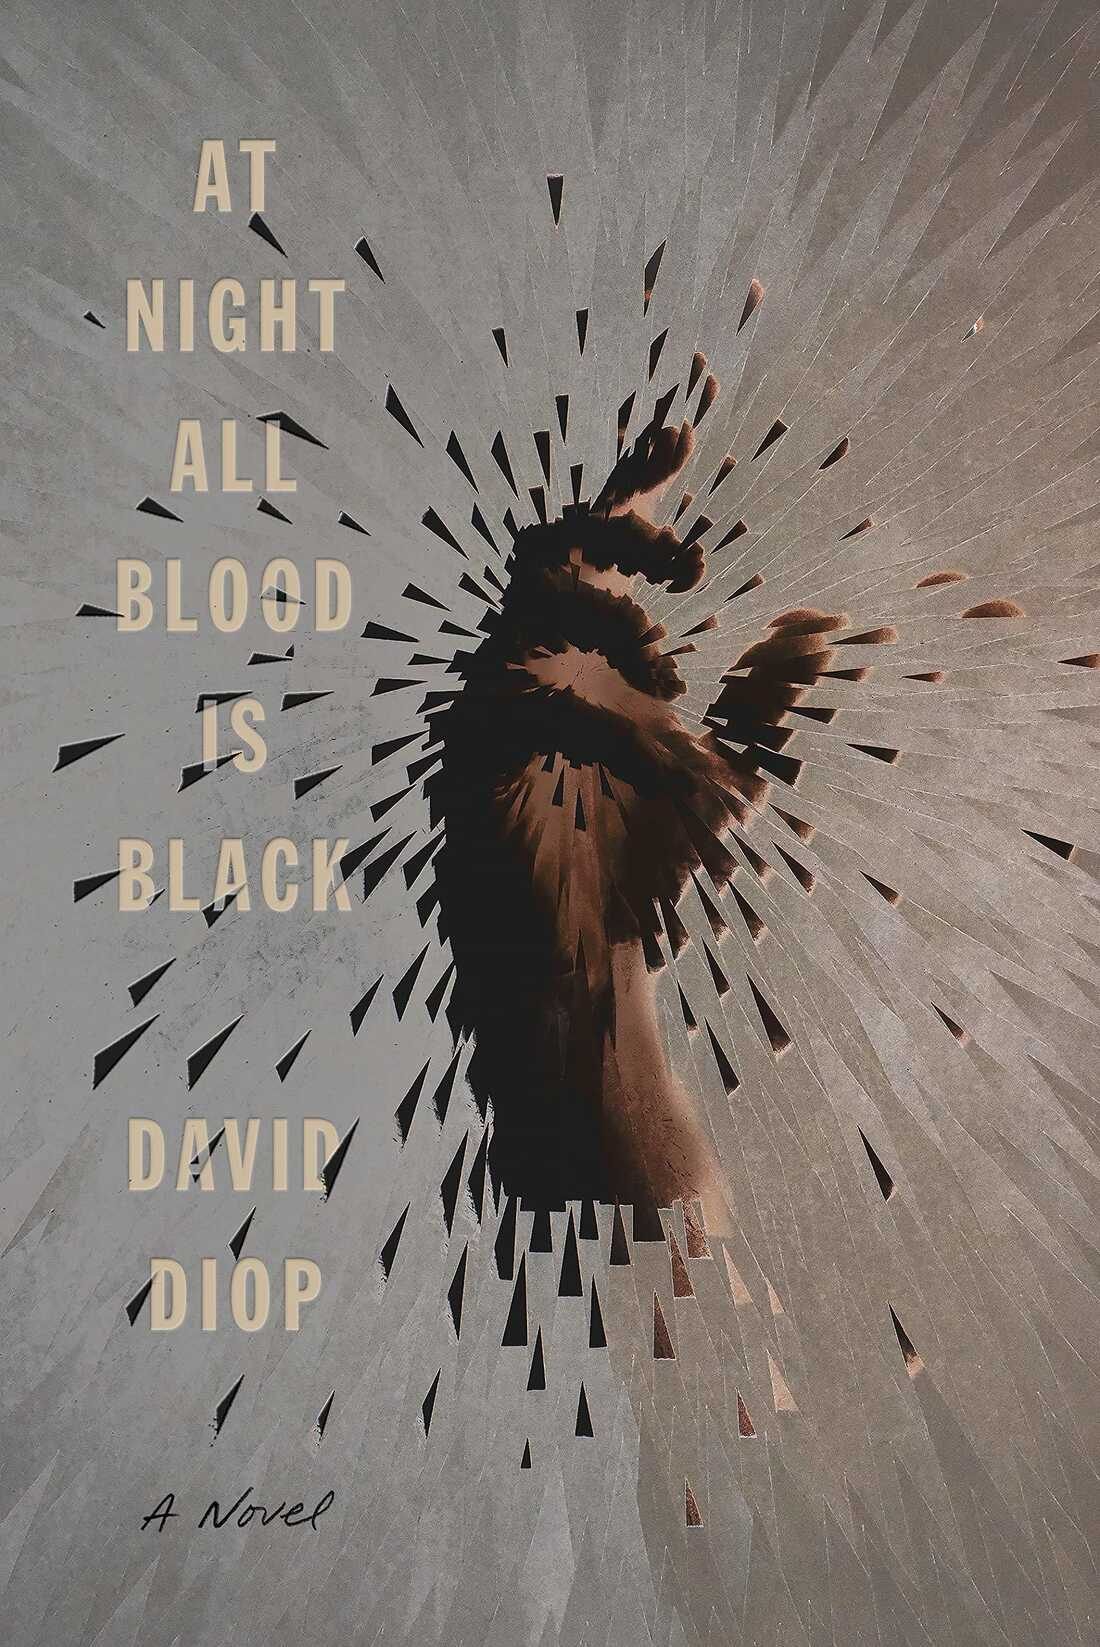 At Night All Blood is Black, by David Diop